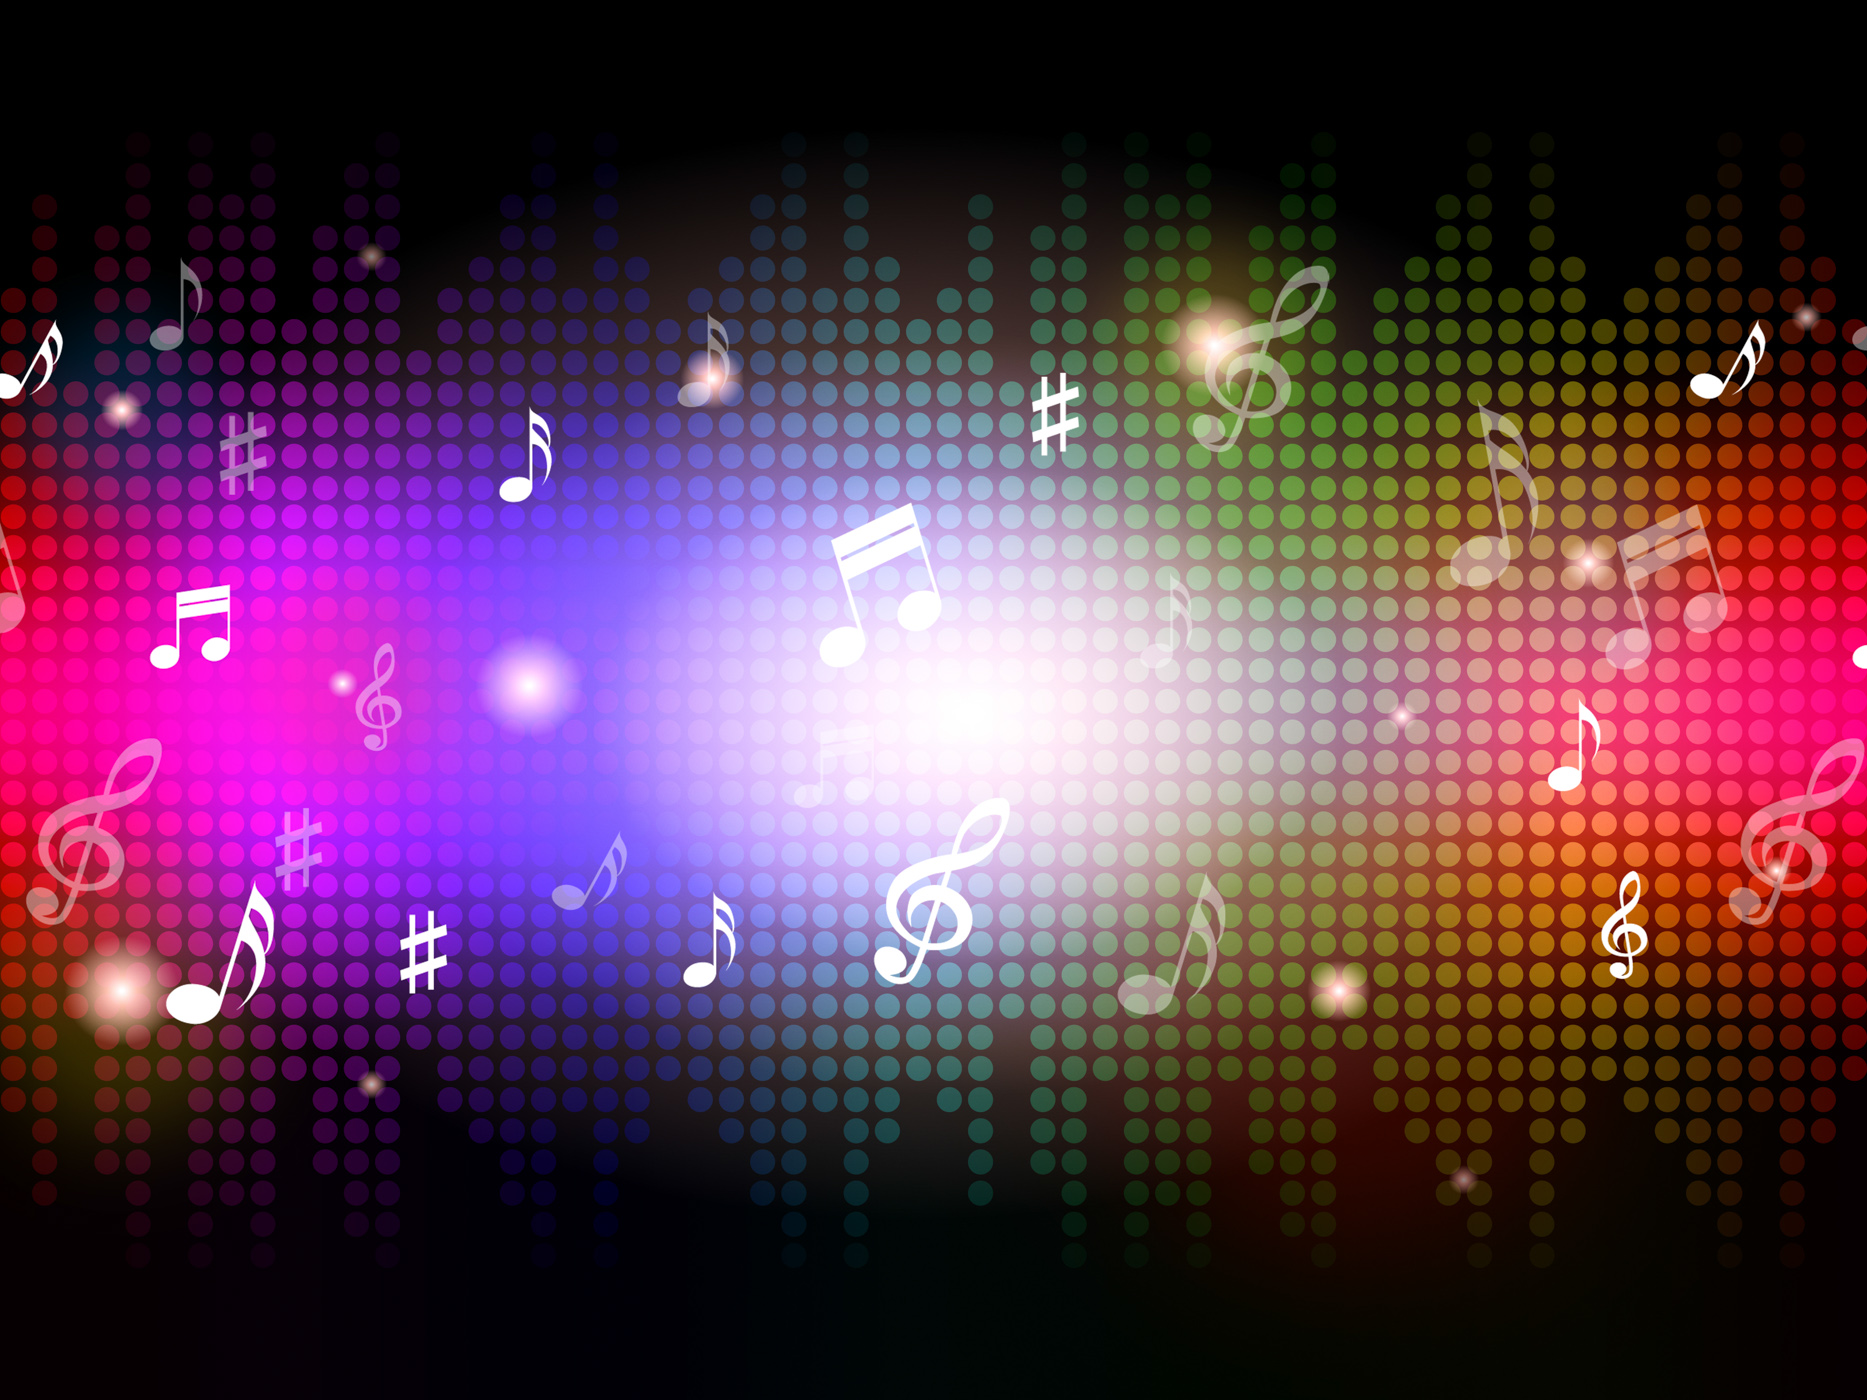 Music Background Shows Notes And Musical Piece, Tune, Piece, Sounds, Soul, HQ Photo